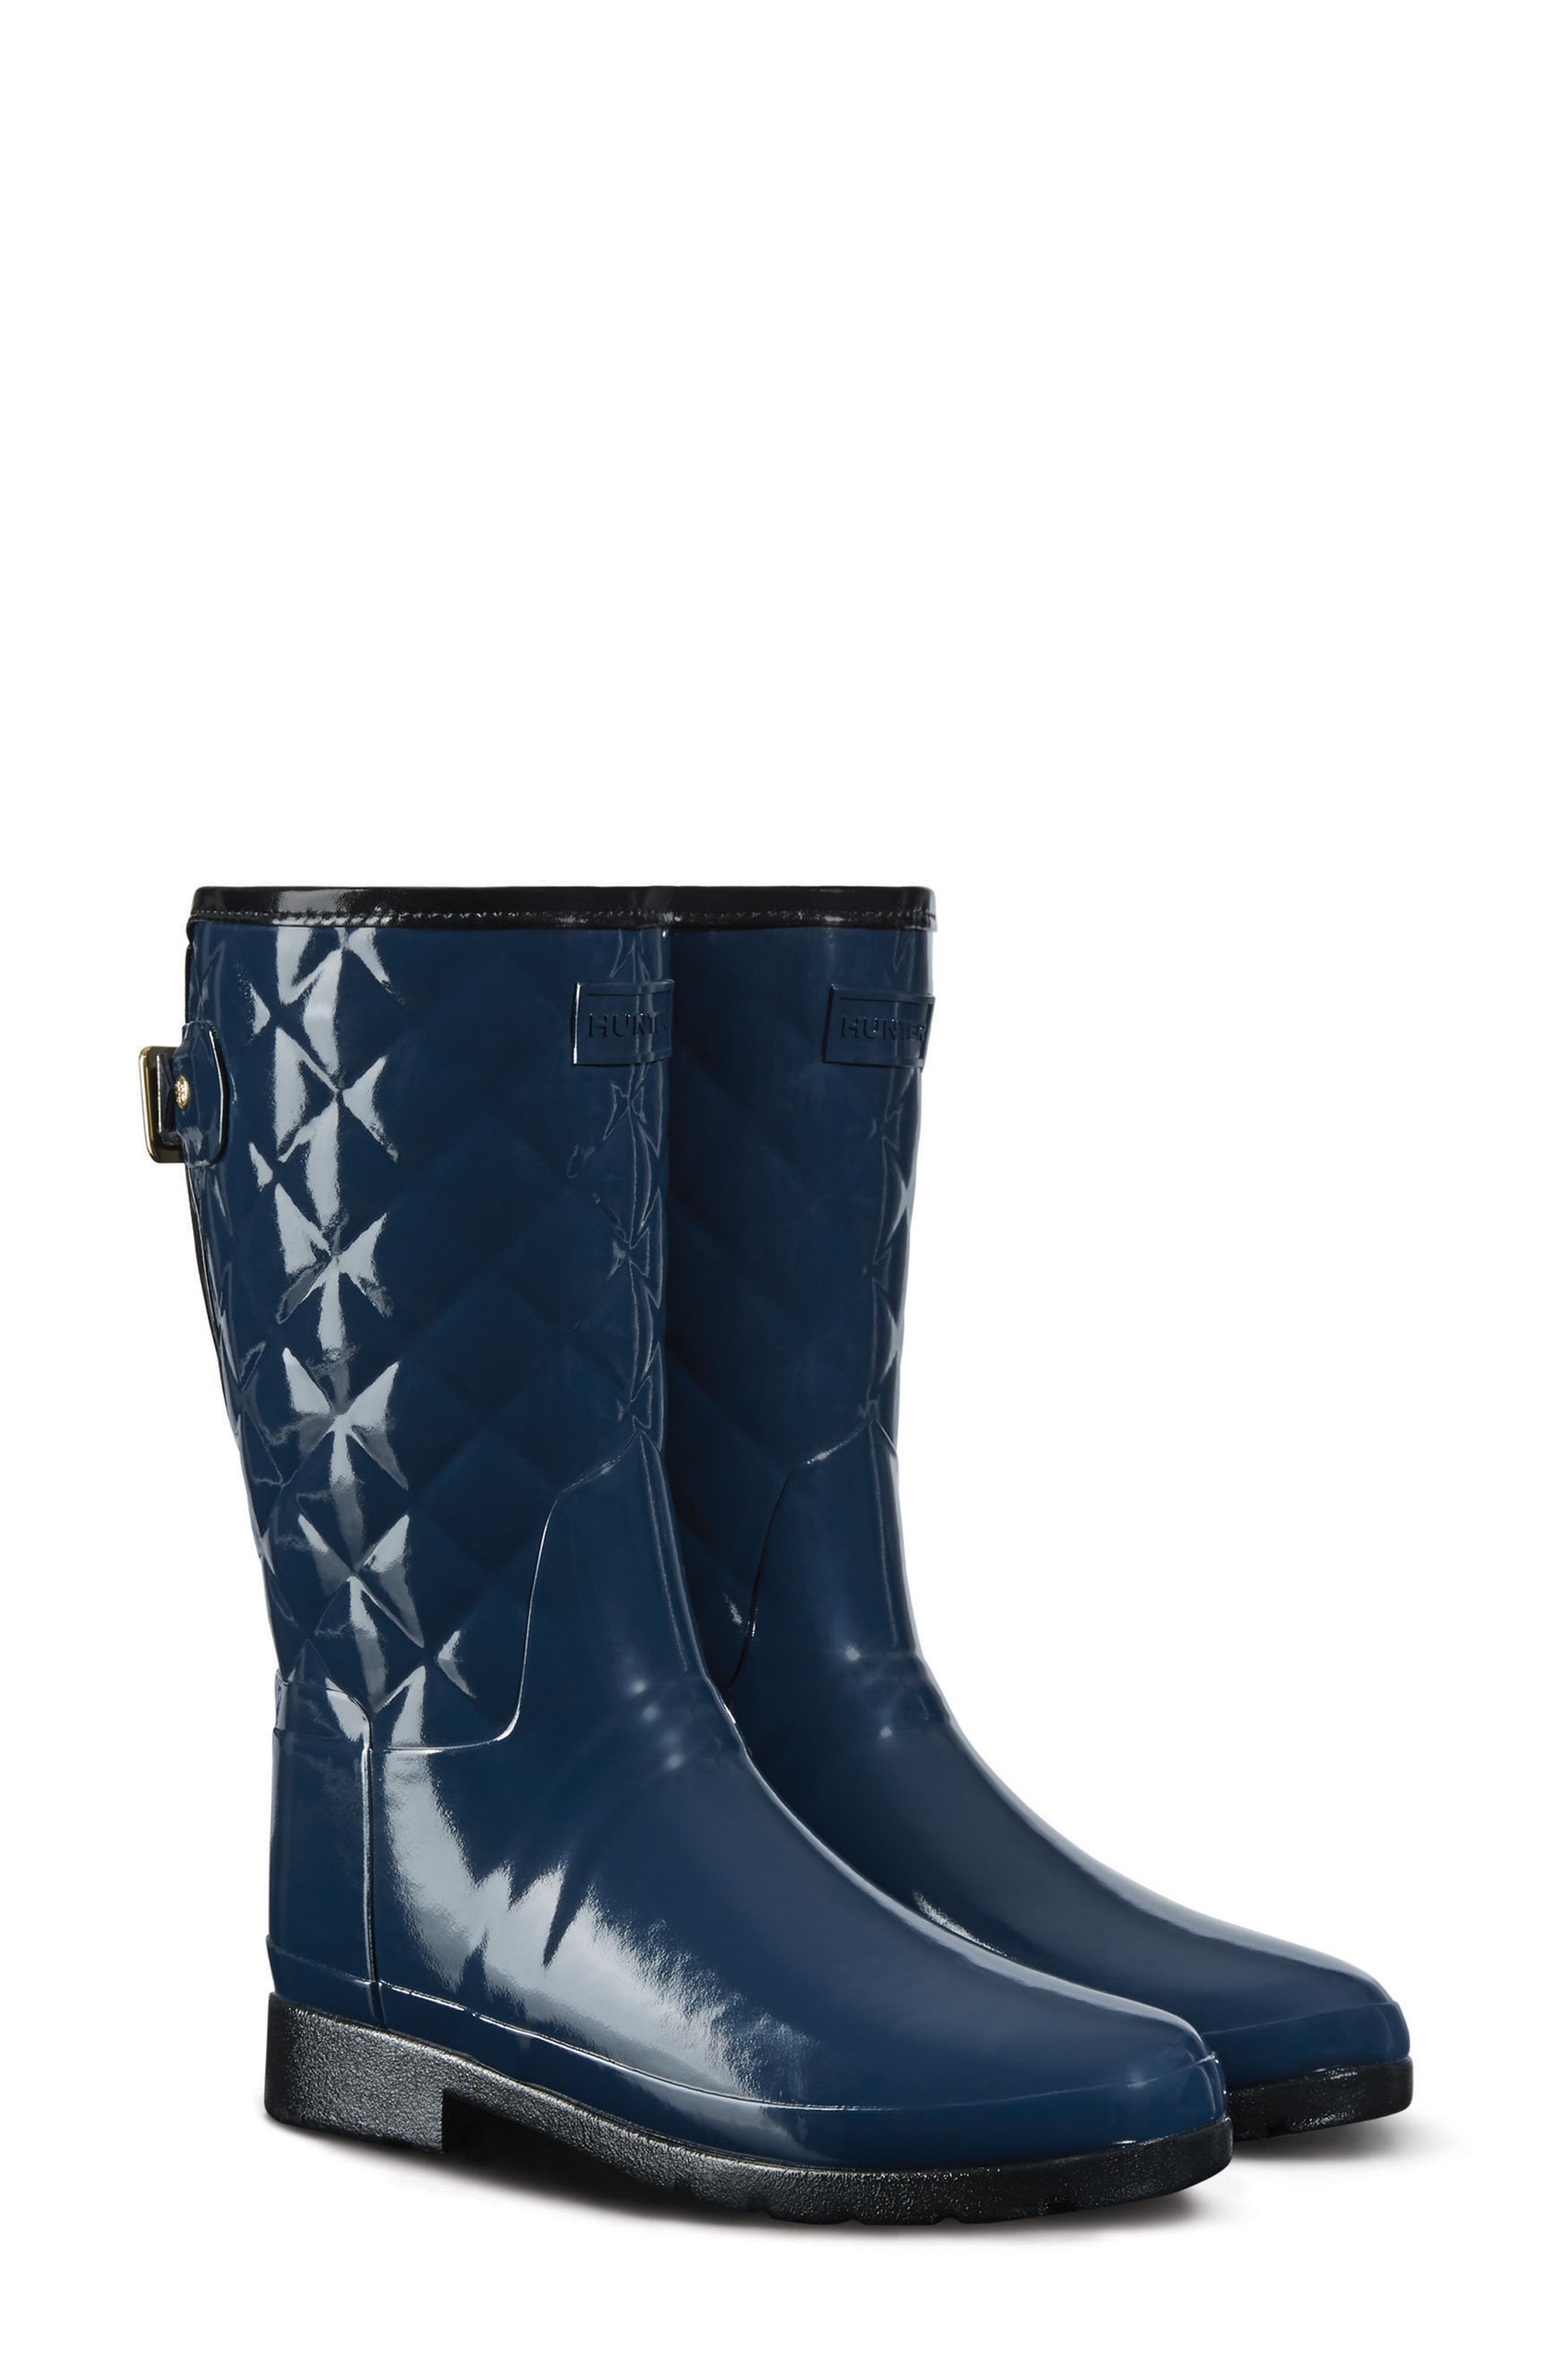 Alternate Image 1 Selected - Hunter Refined High Gloss Quilted Short Rain Boot (Women)